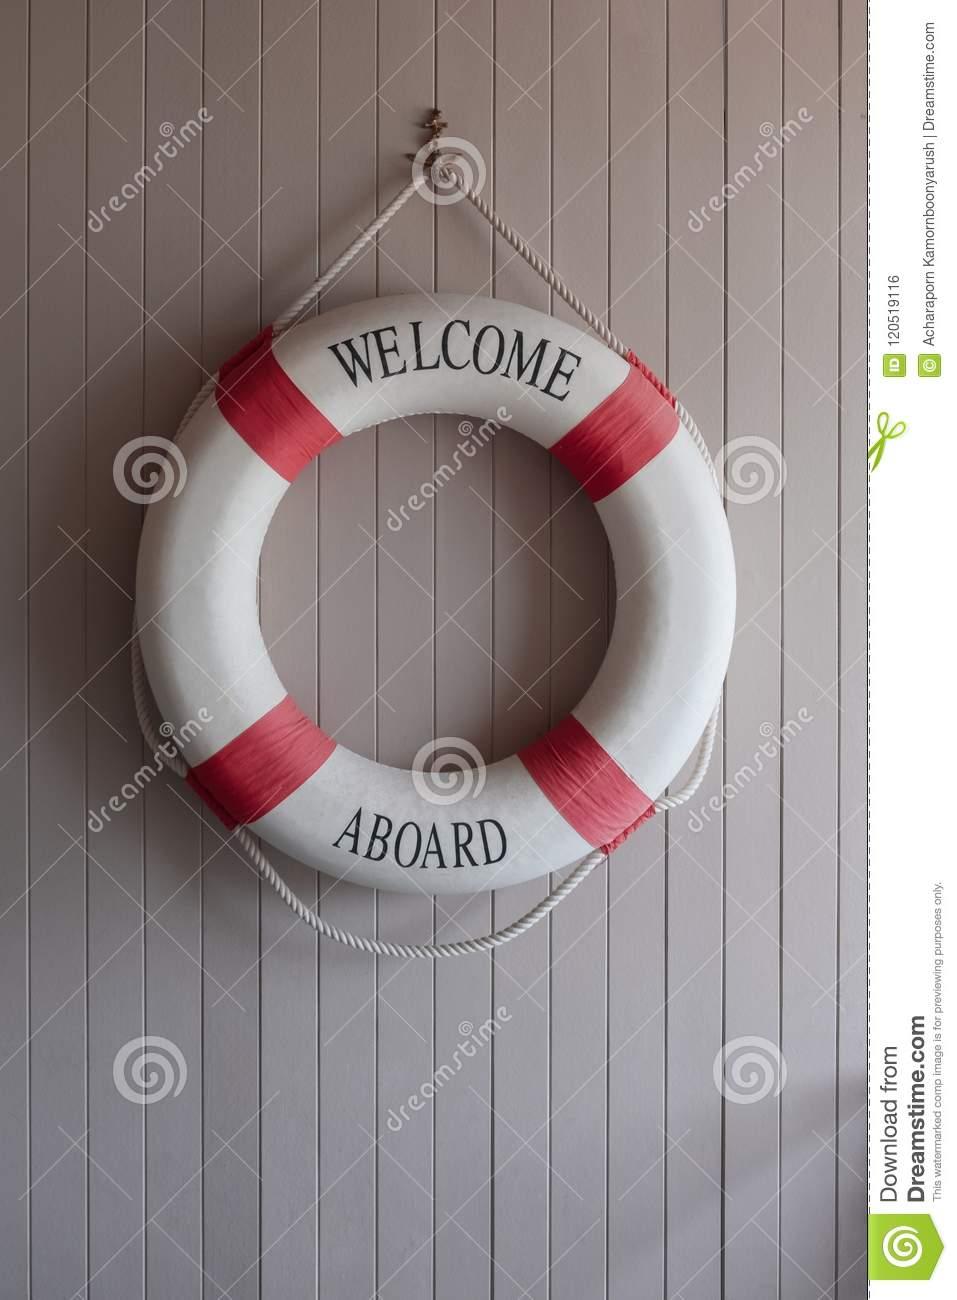 Red-white lifebuoy, safety torus on wooden board